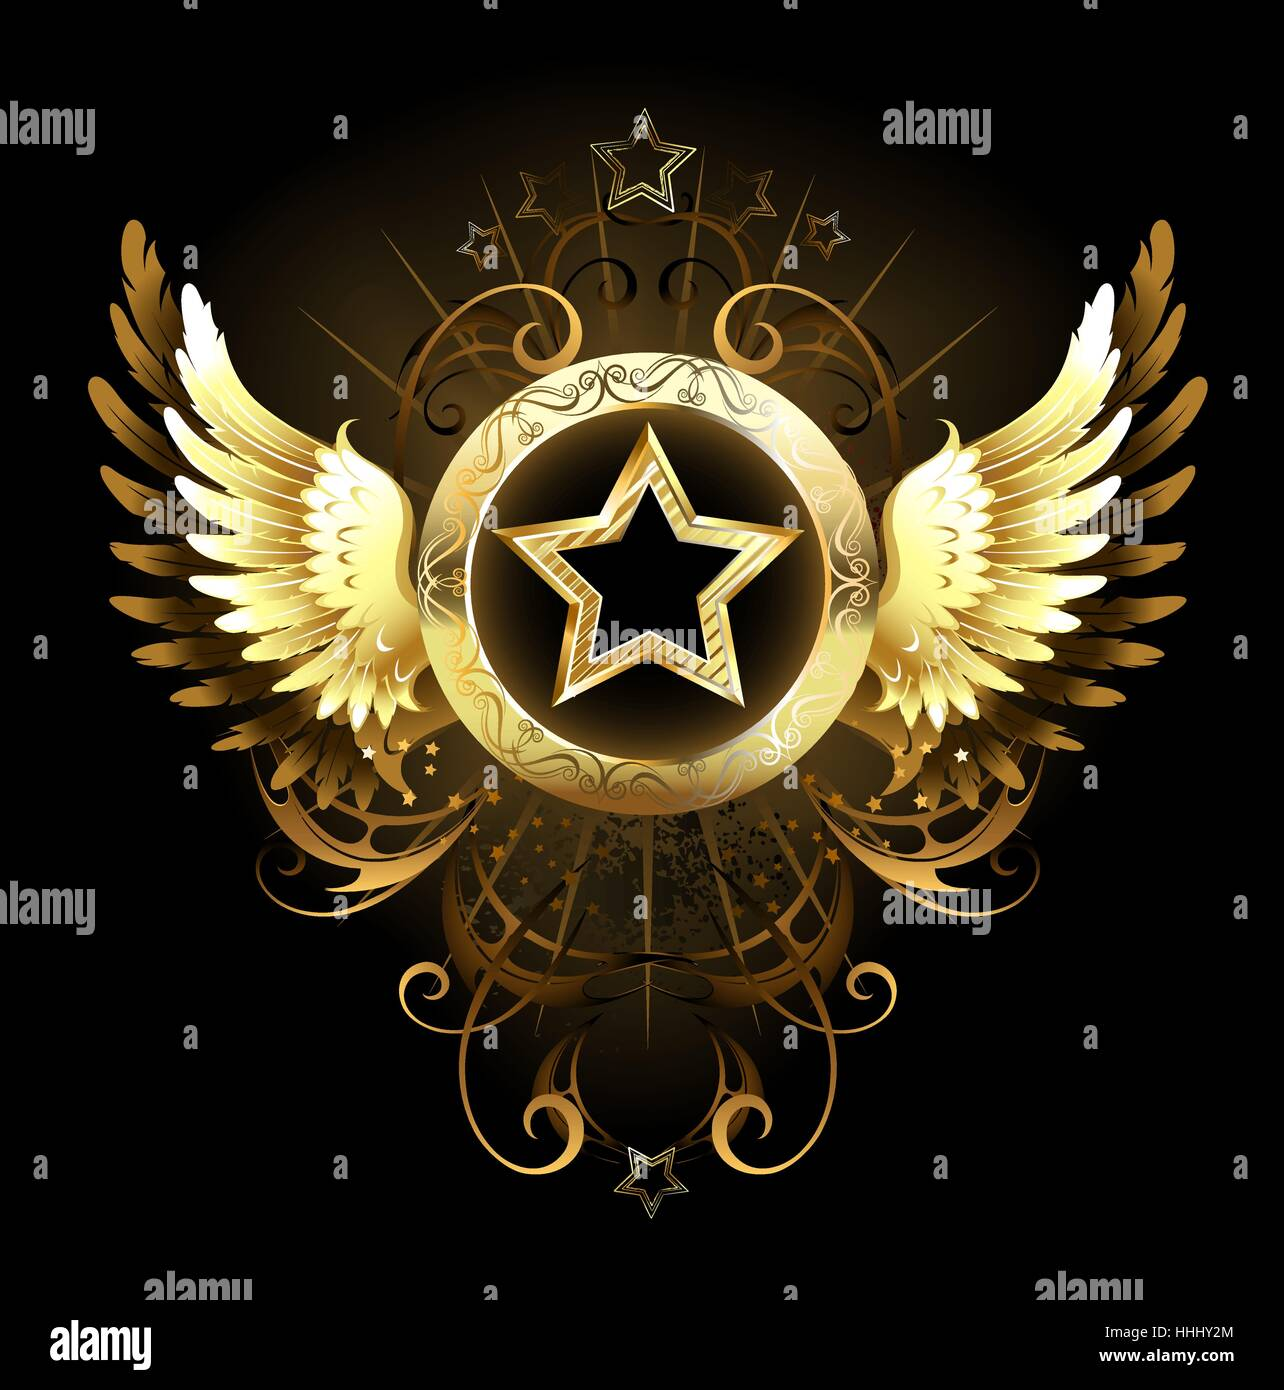 gold star with a circular banner decorated with golden wings and a